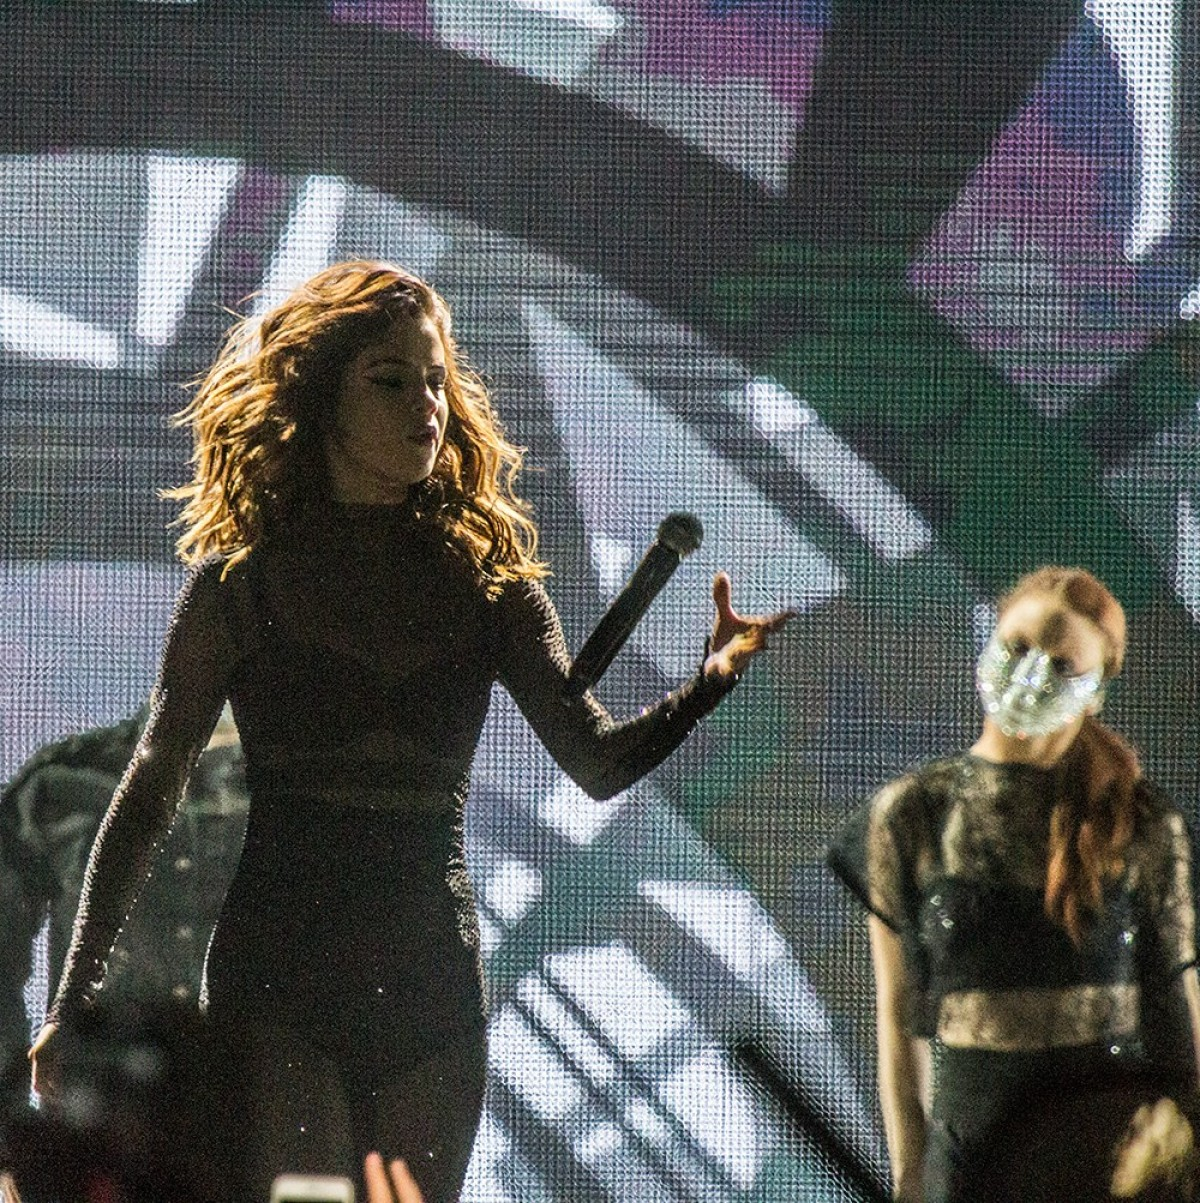 Vector Arena Auckland Events: Selena Gomez At The Vector Arena Auckland Photo Gallery